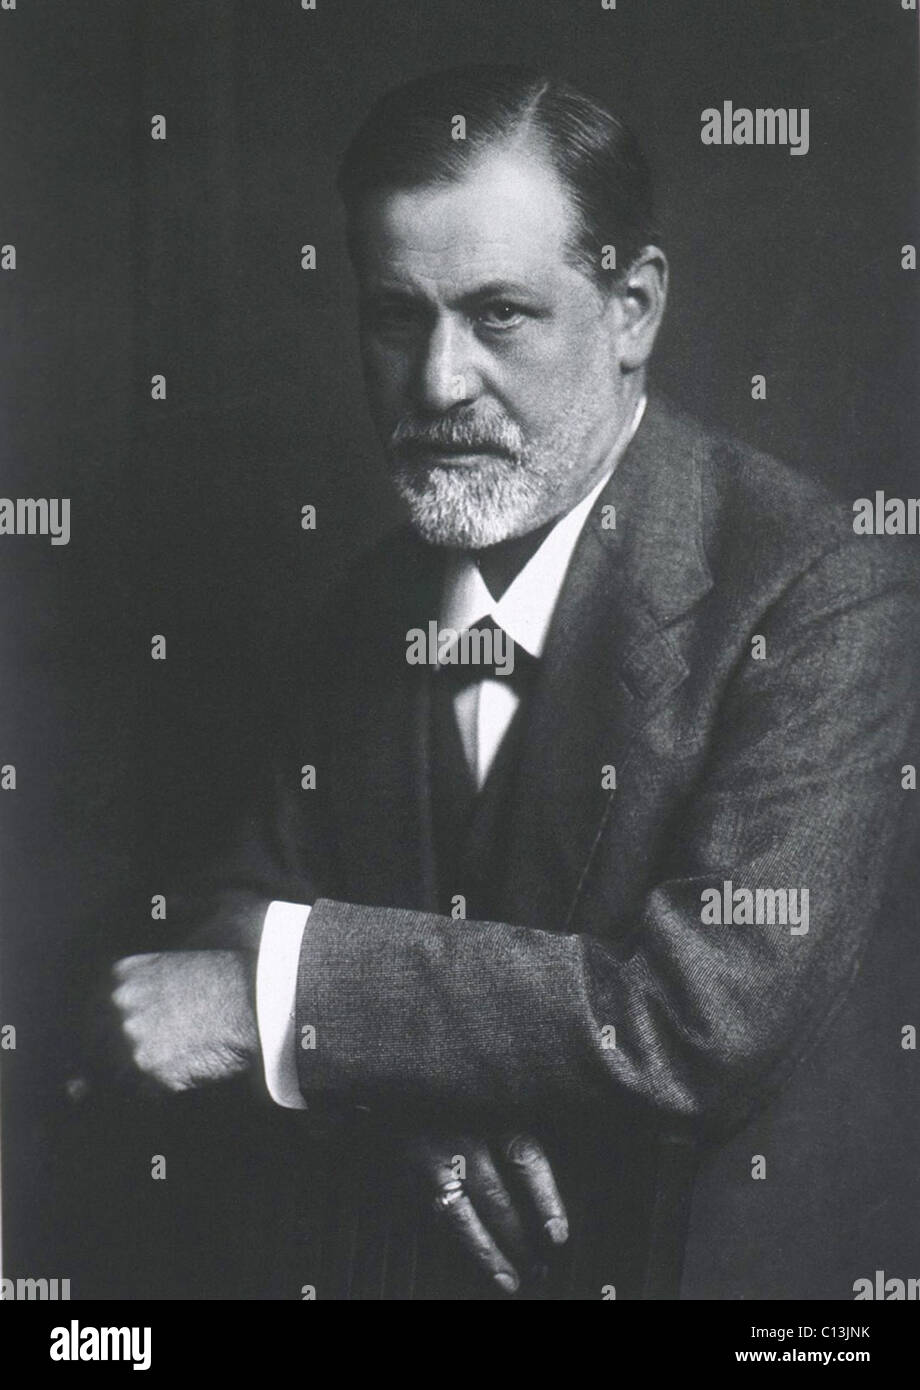 Sigmund Freud (1856-1939), with arms resting on back of chair. Photogravure by Max Halberstadt, who was also the Stock Photo